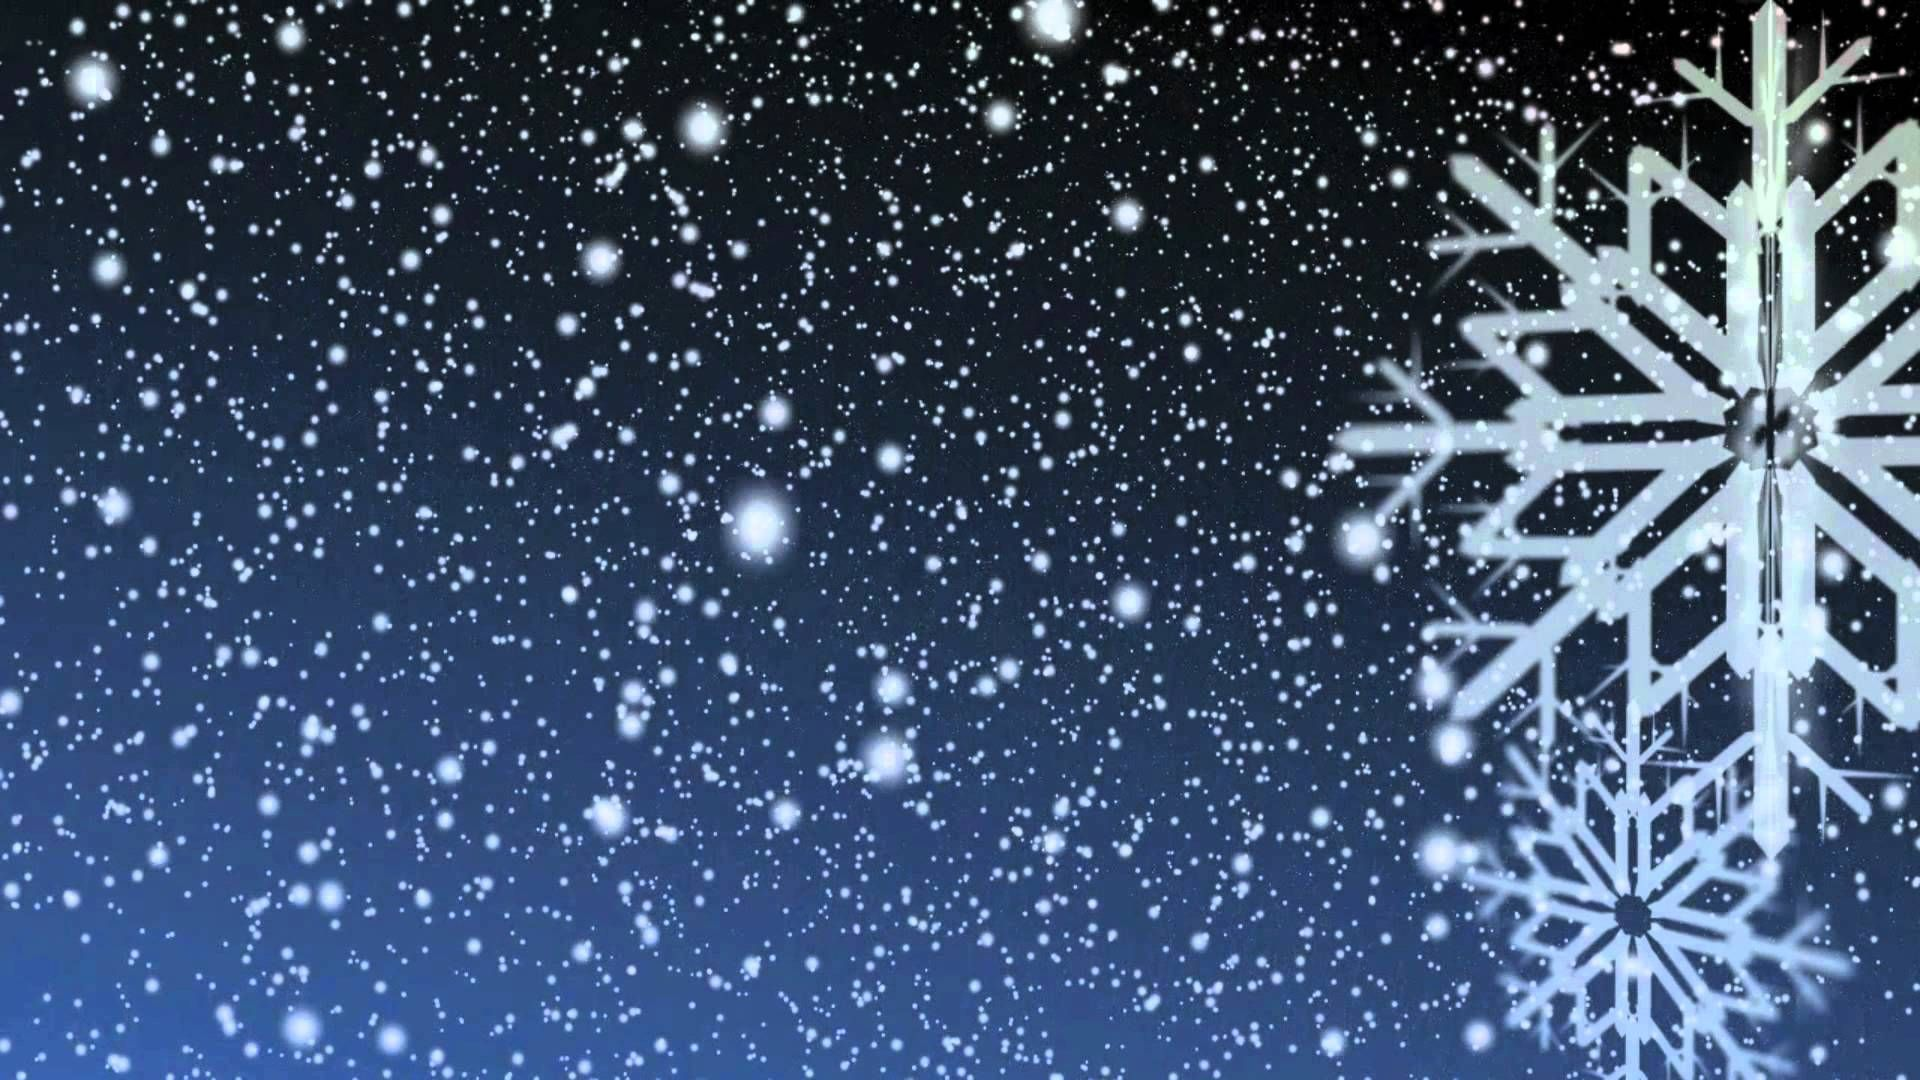 Silhouette Snow Is Falling Down Computer Wallpaper Snow Fairy Snowflakes